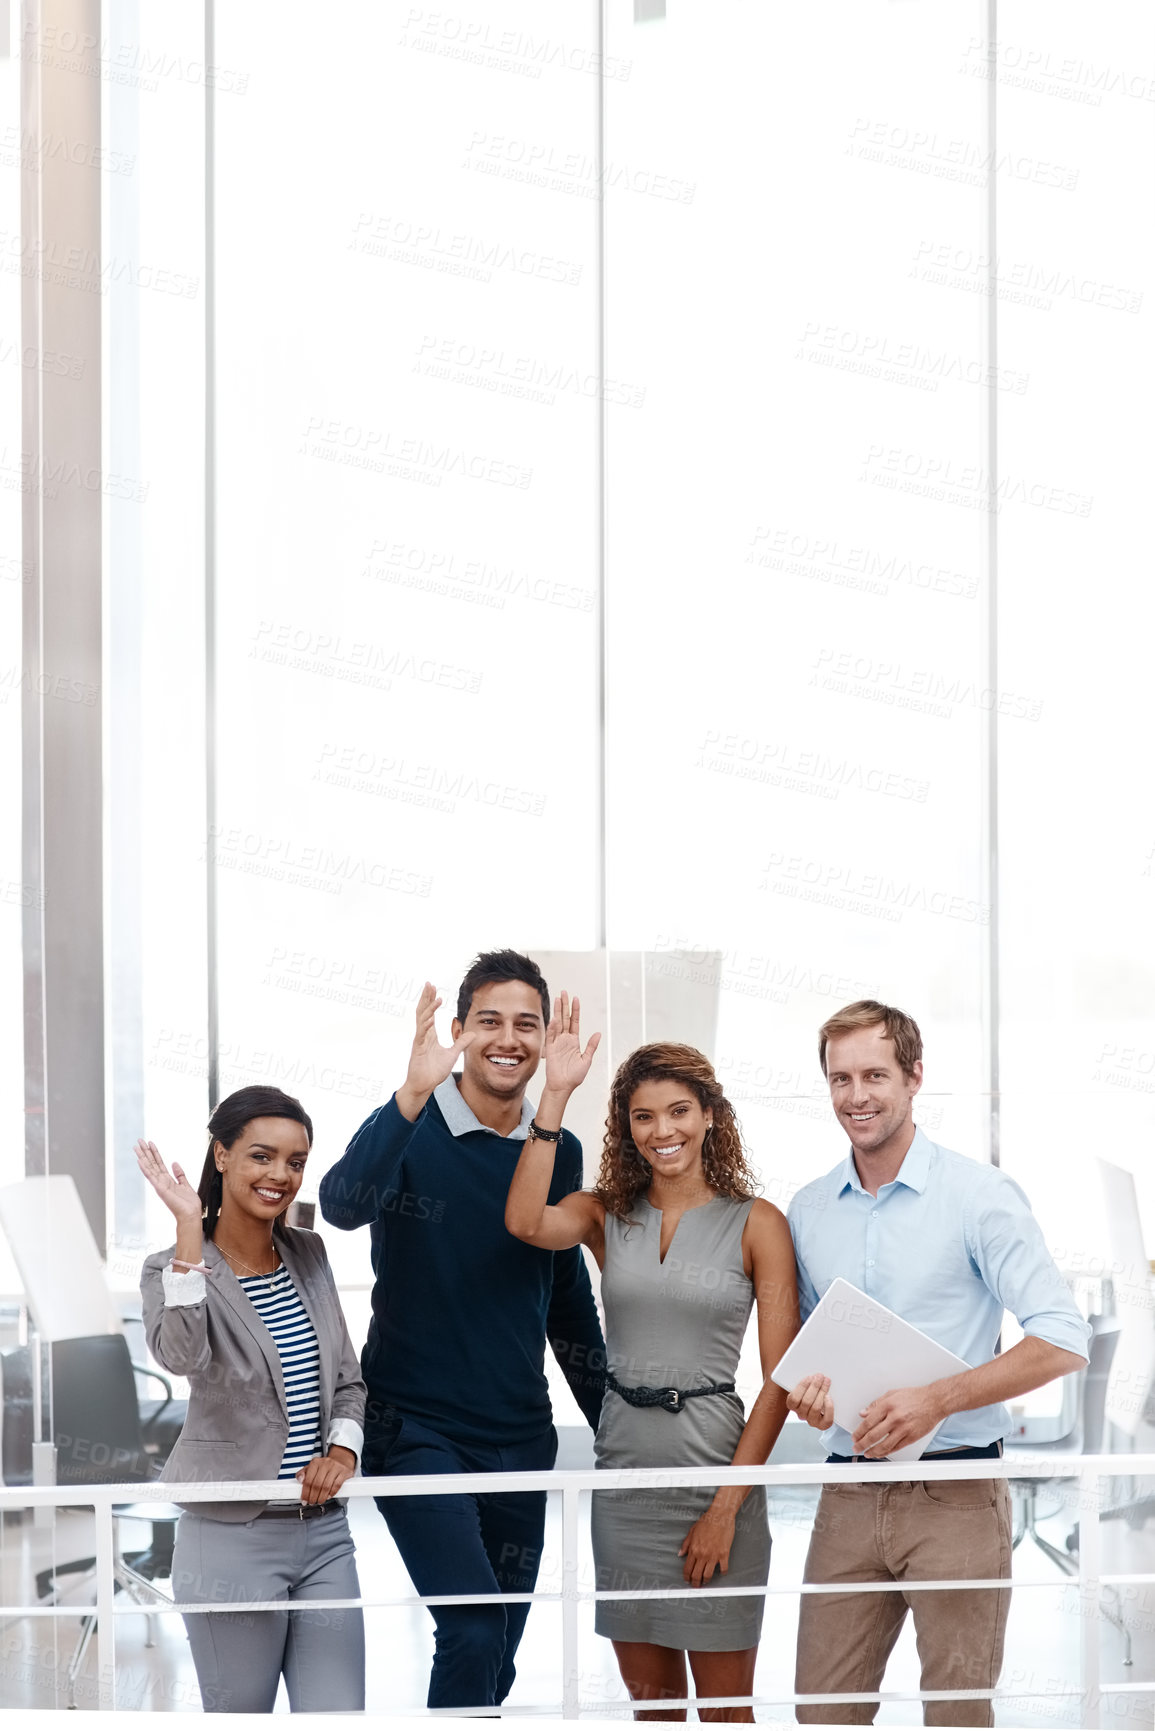 Buy stock photo Shot of a diverse group of colleagues waving at the camera with their arm raised at the office